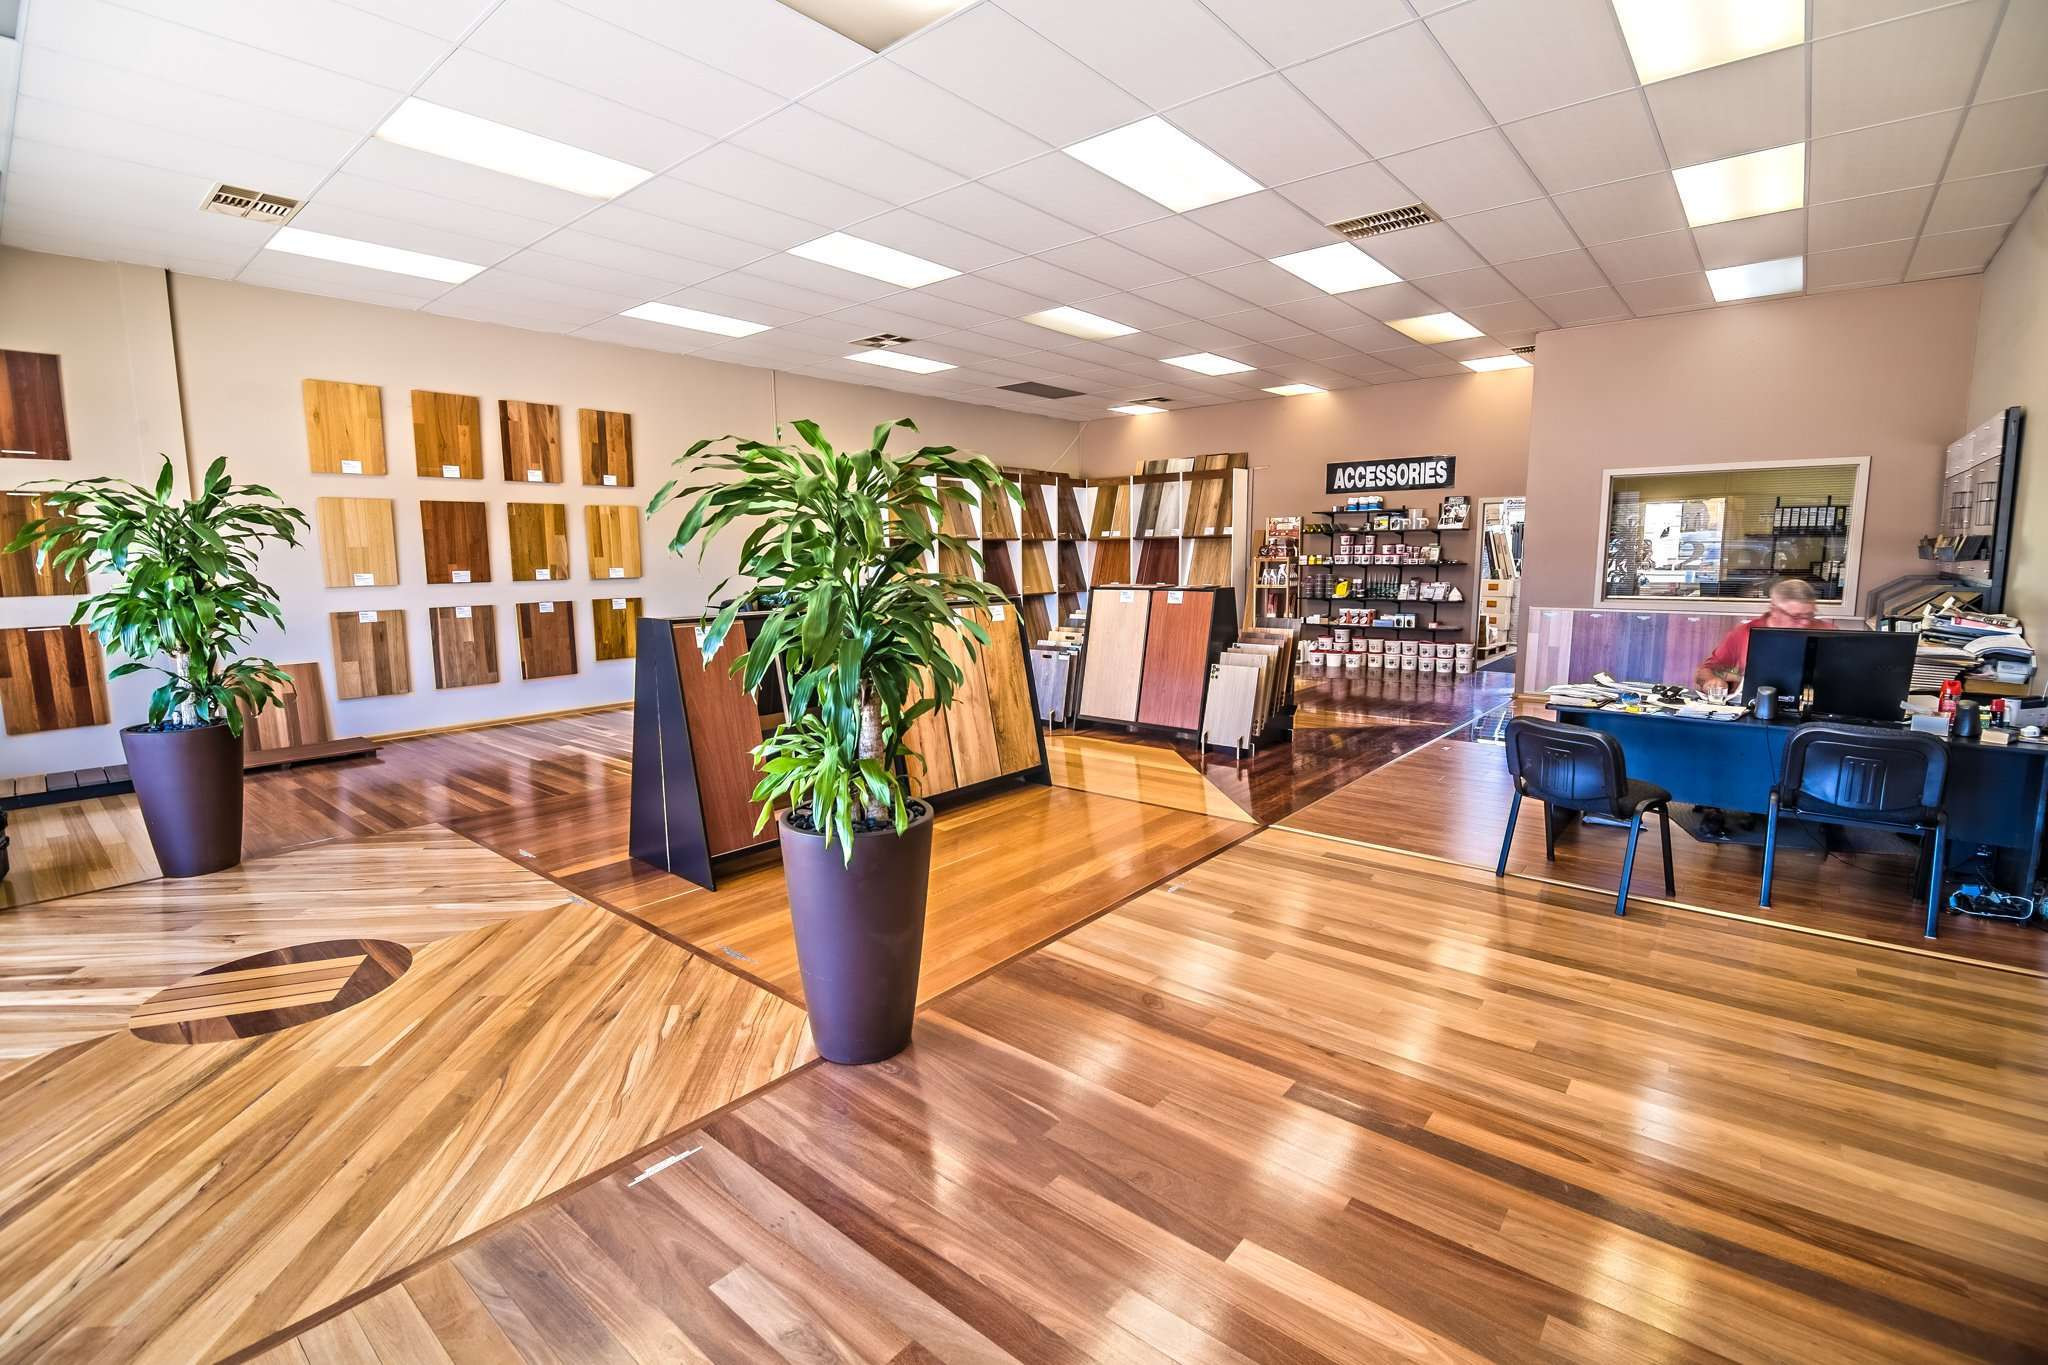 How Much Does Labor Cost to Install Hardwood Floors Of Wood Floor Price Lists A1 Wood Floors In 4 1451 Albany Hwy Cannington